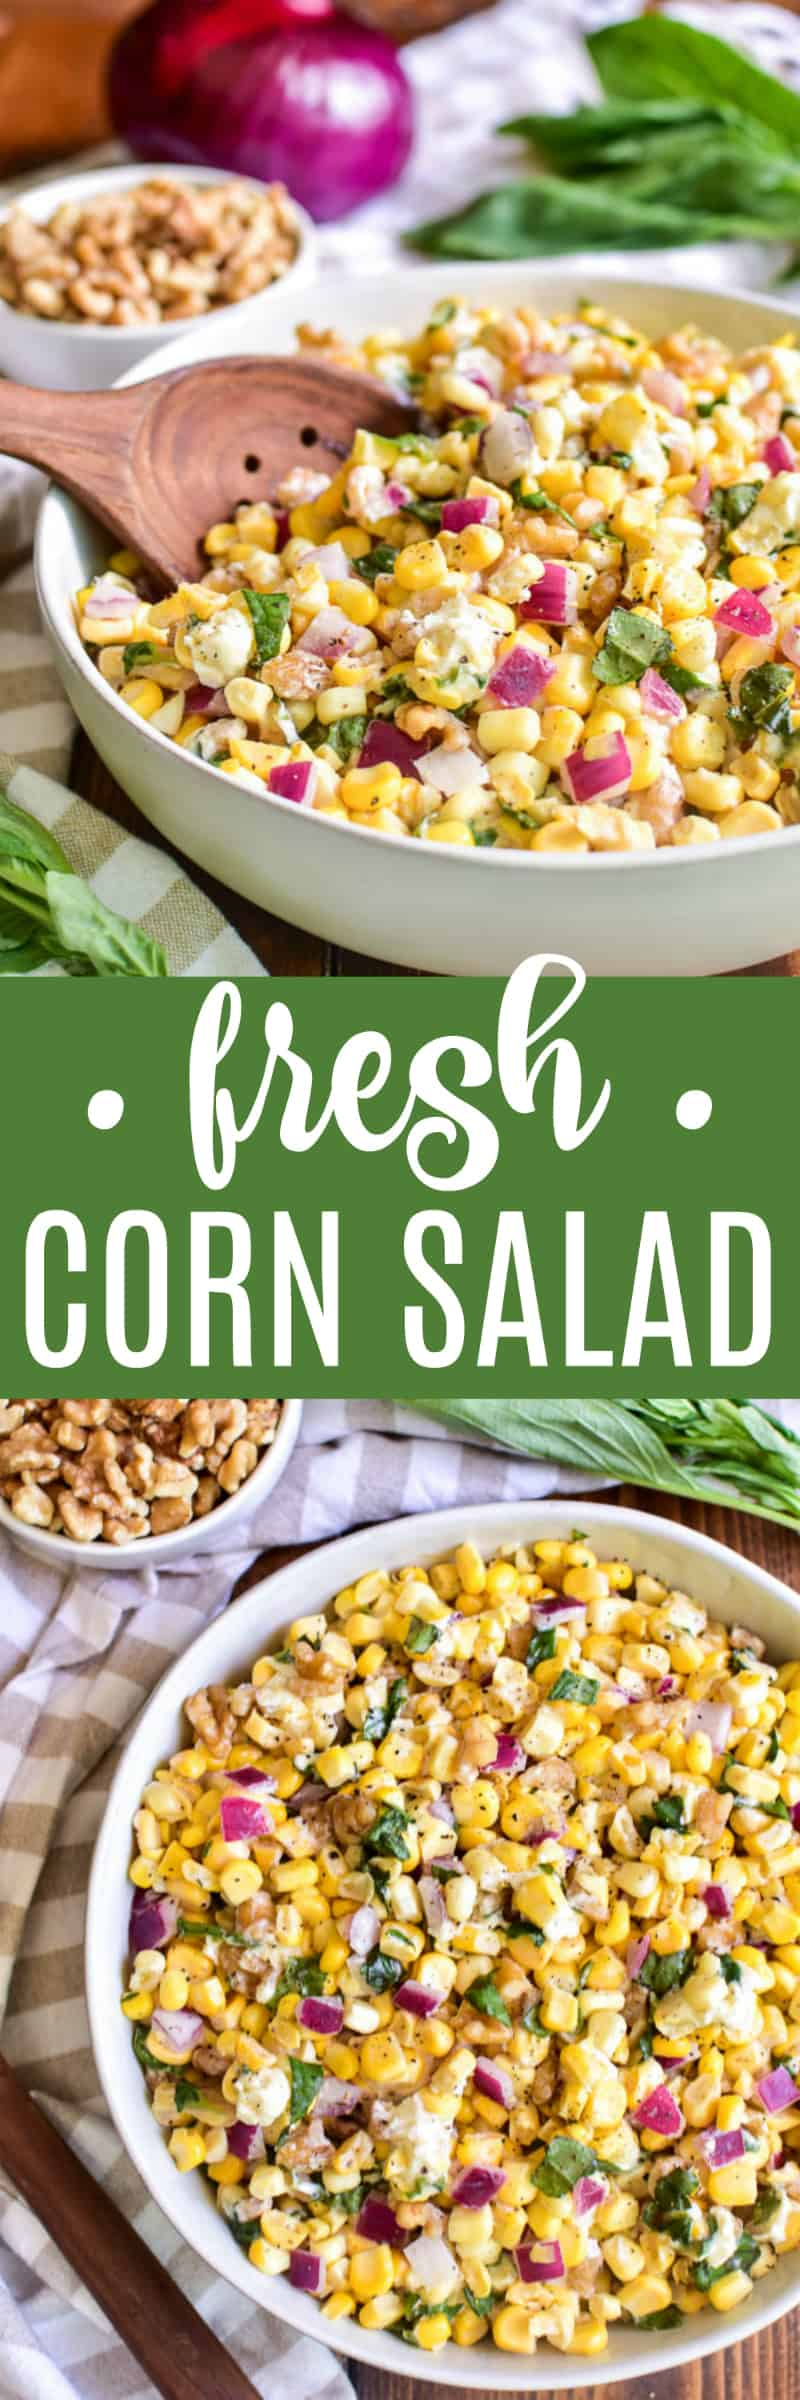 Collage image of Fresh Corn Salad with serving spoon and overhead